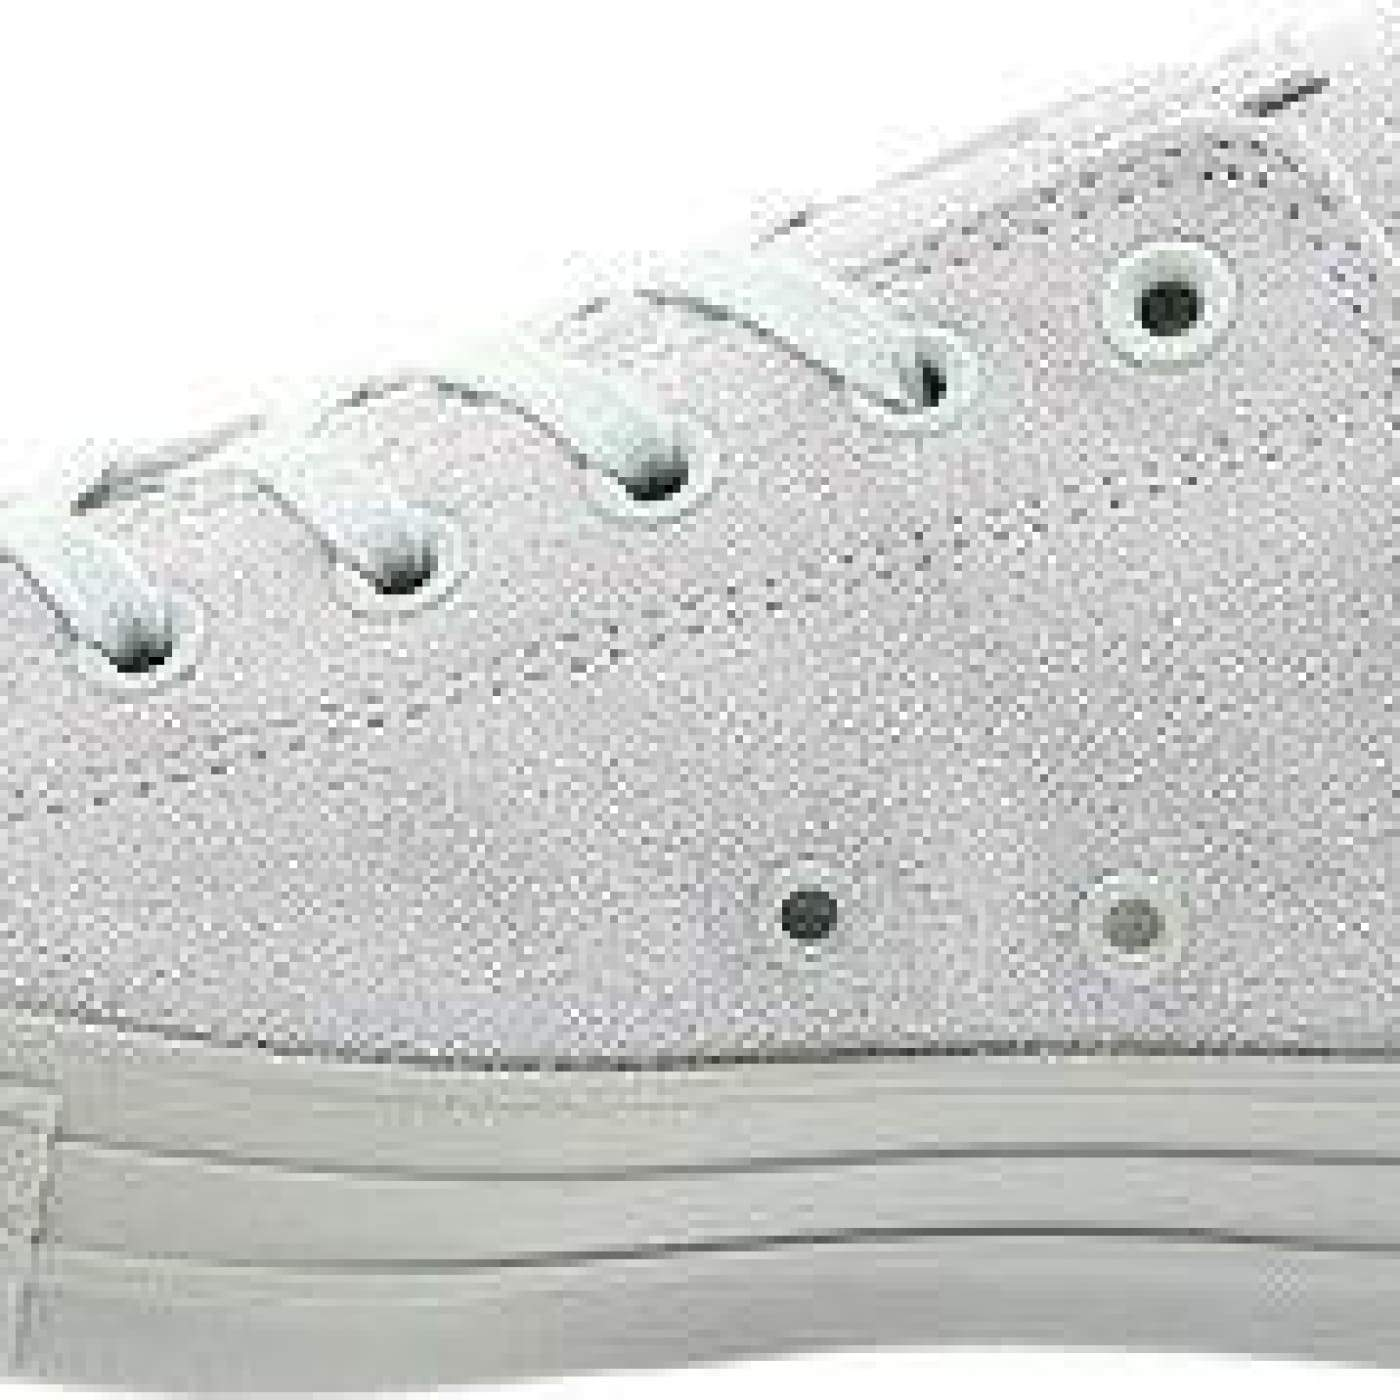 Converse Converse Chuck Taylor All Star Ox Mono Suede Sneaker Light SilverLight Silver Sneakers from shoes | ShapeShop